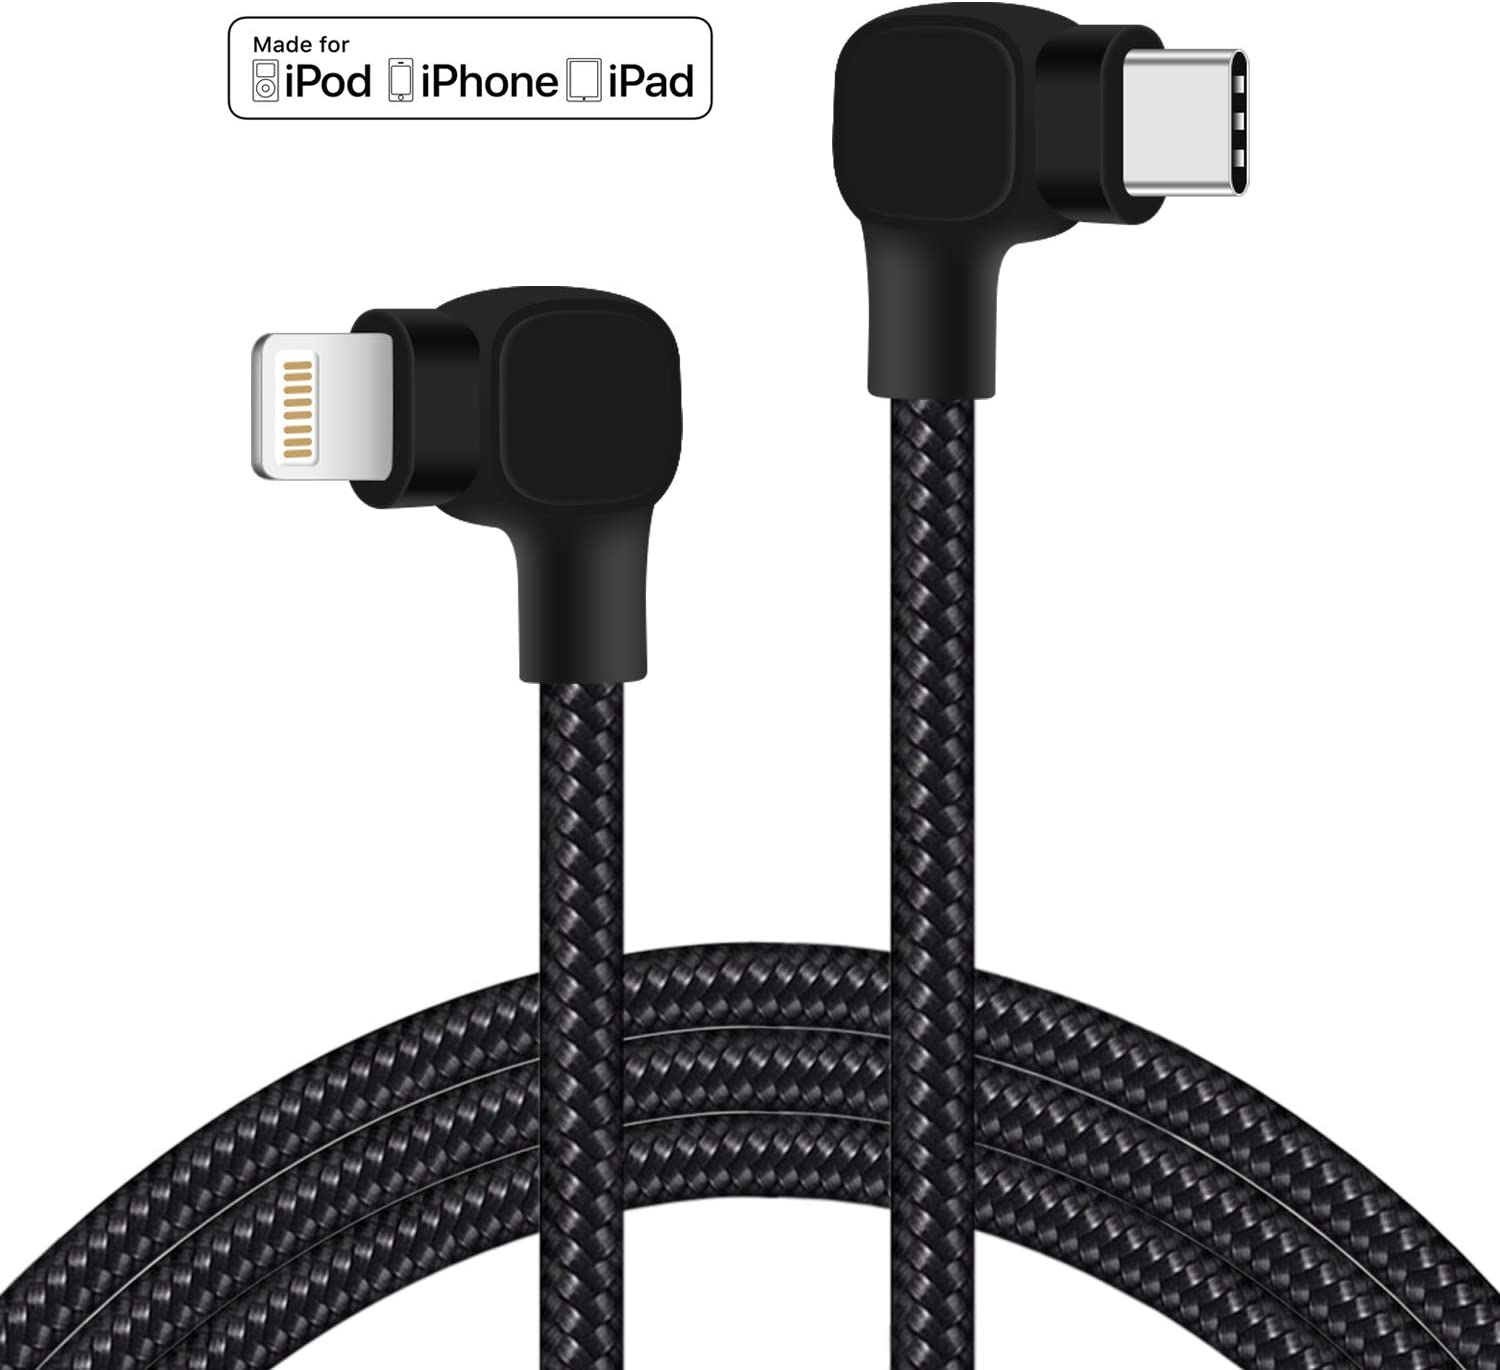 90 Degree MFI Certified USB C to Lightning Cable 5ft Right Angle Type C to iPhone Charger Cable Durable Braided Nylon Data Sync Fast Compatible with iPhone 12 11 Pro/XS/XR Max (Black)